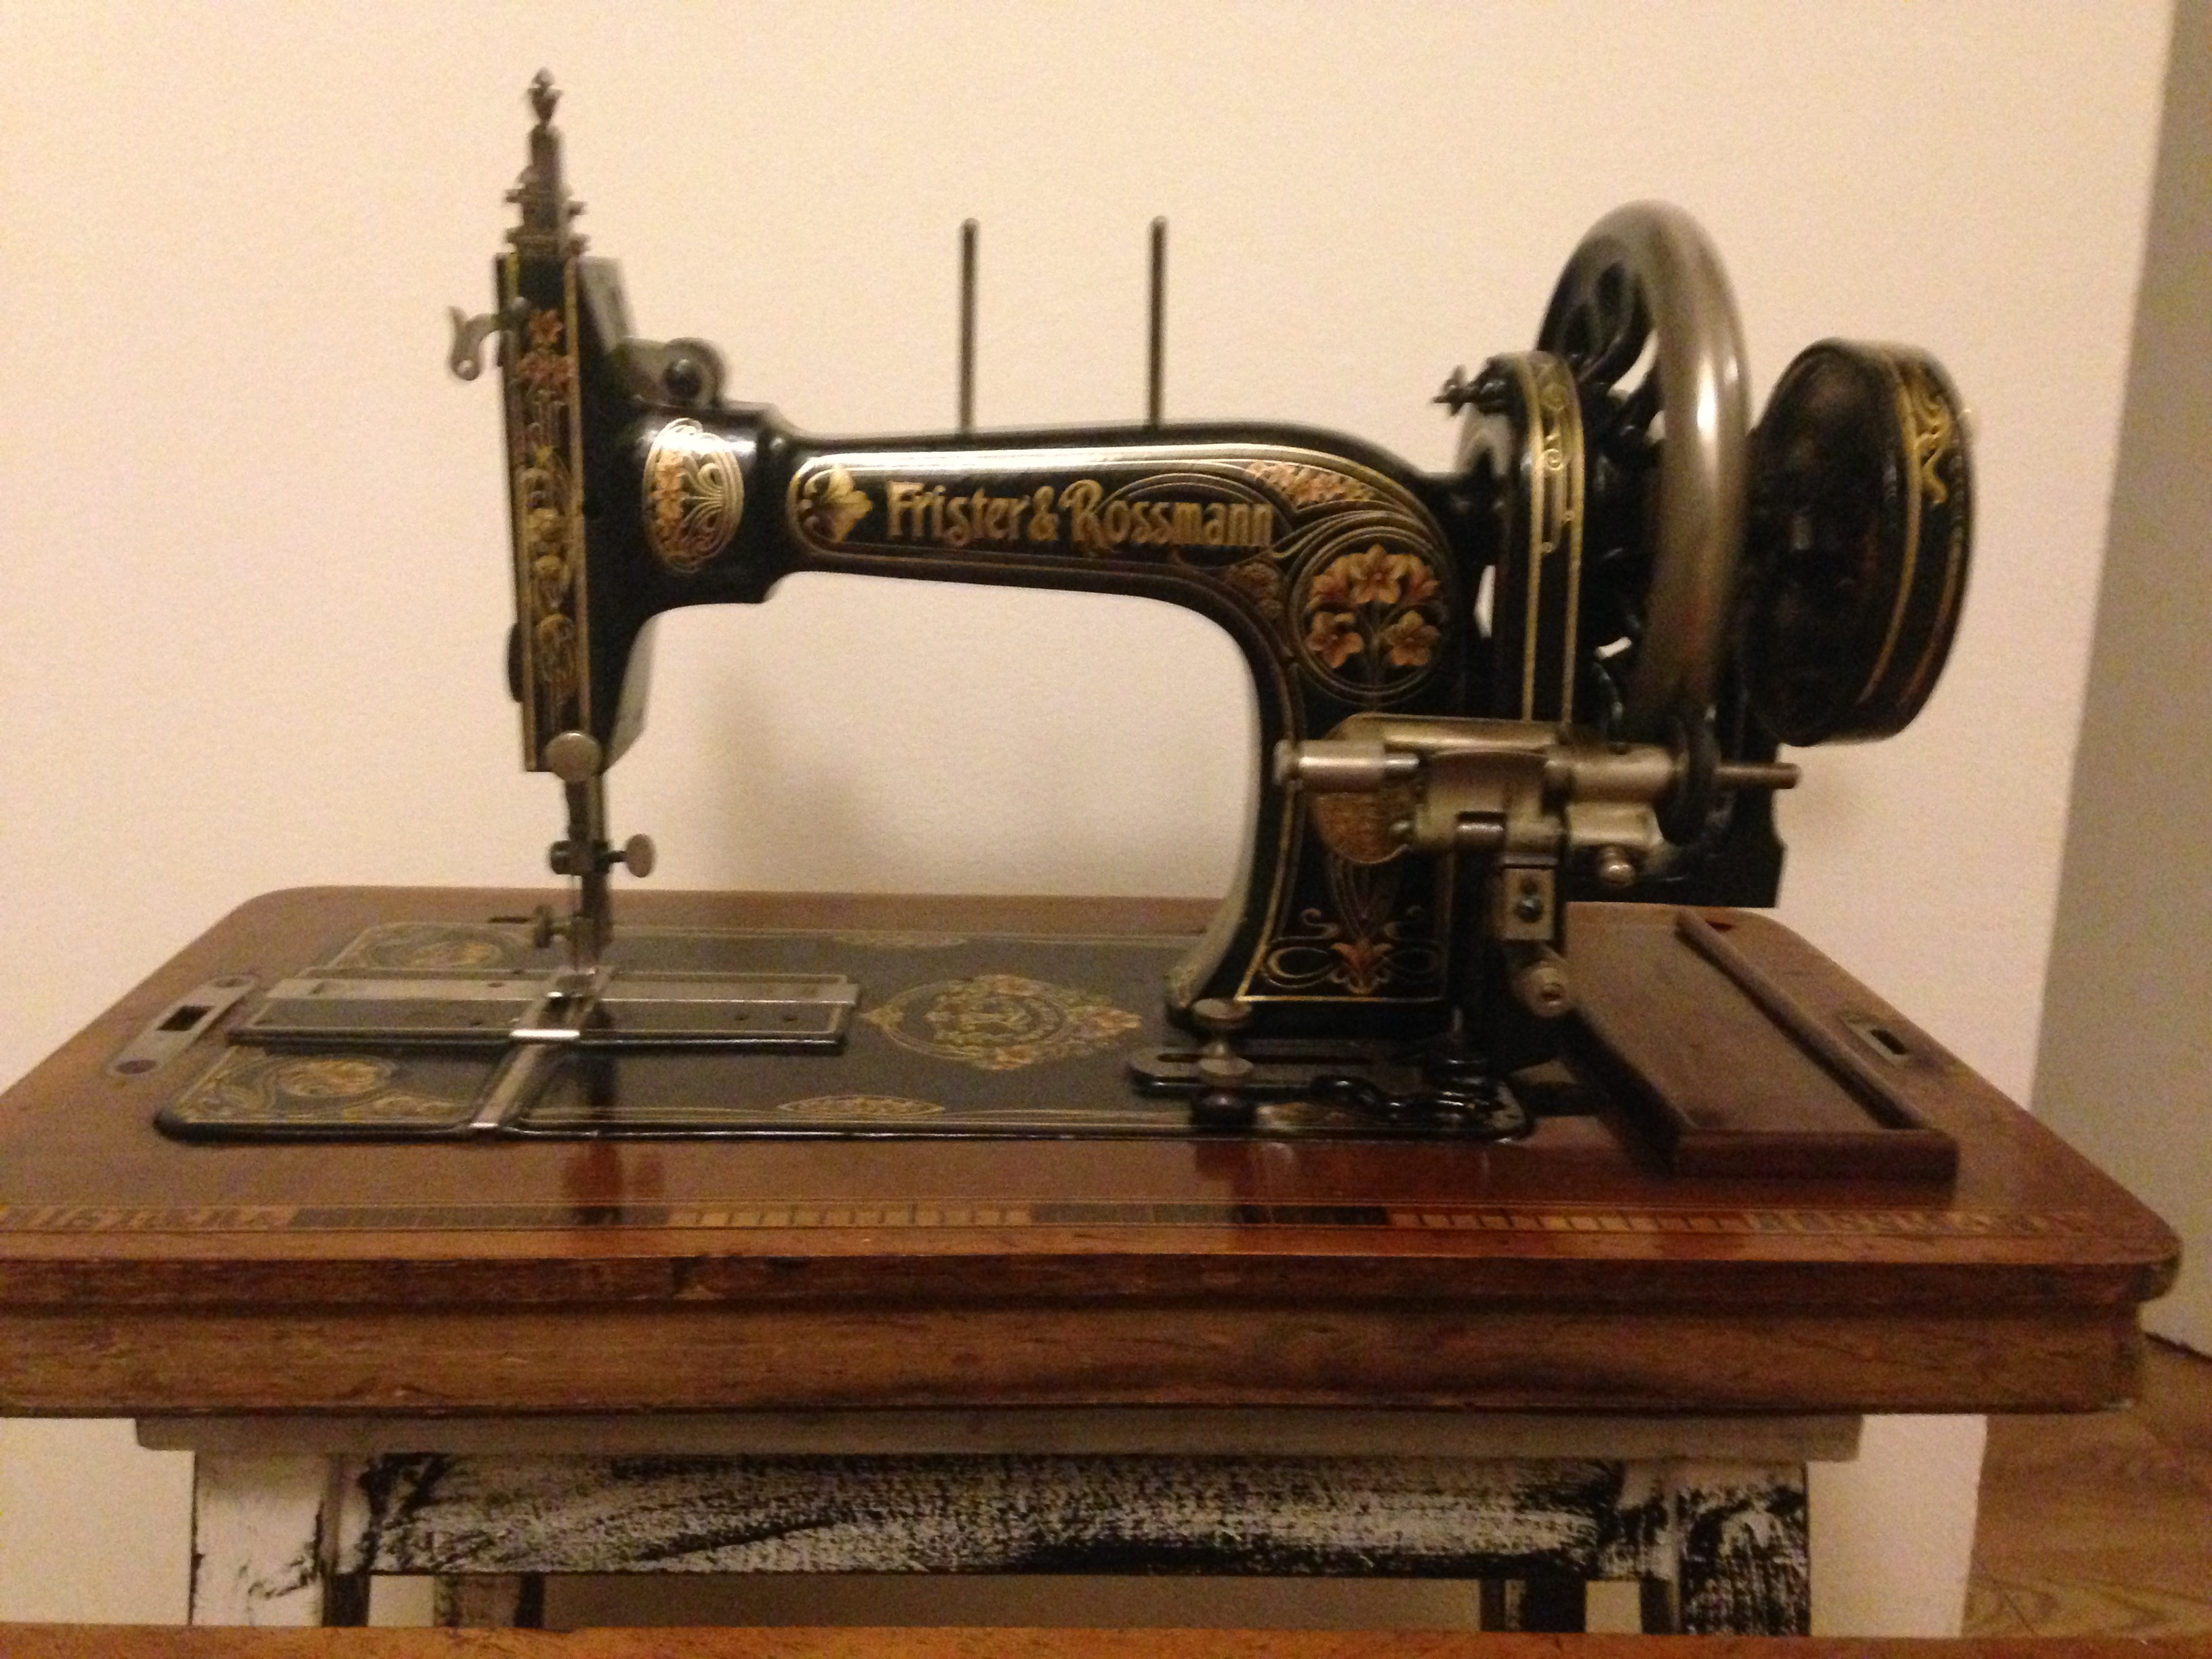 Antique Frister and Rossmann Hand Crank Sewing Machine For Sale